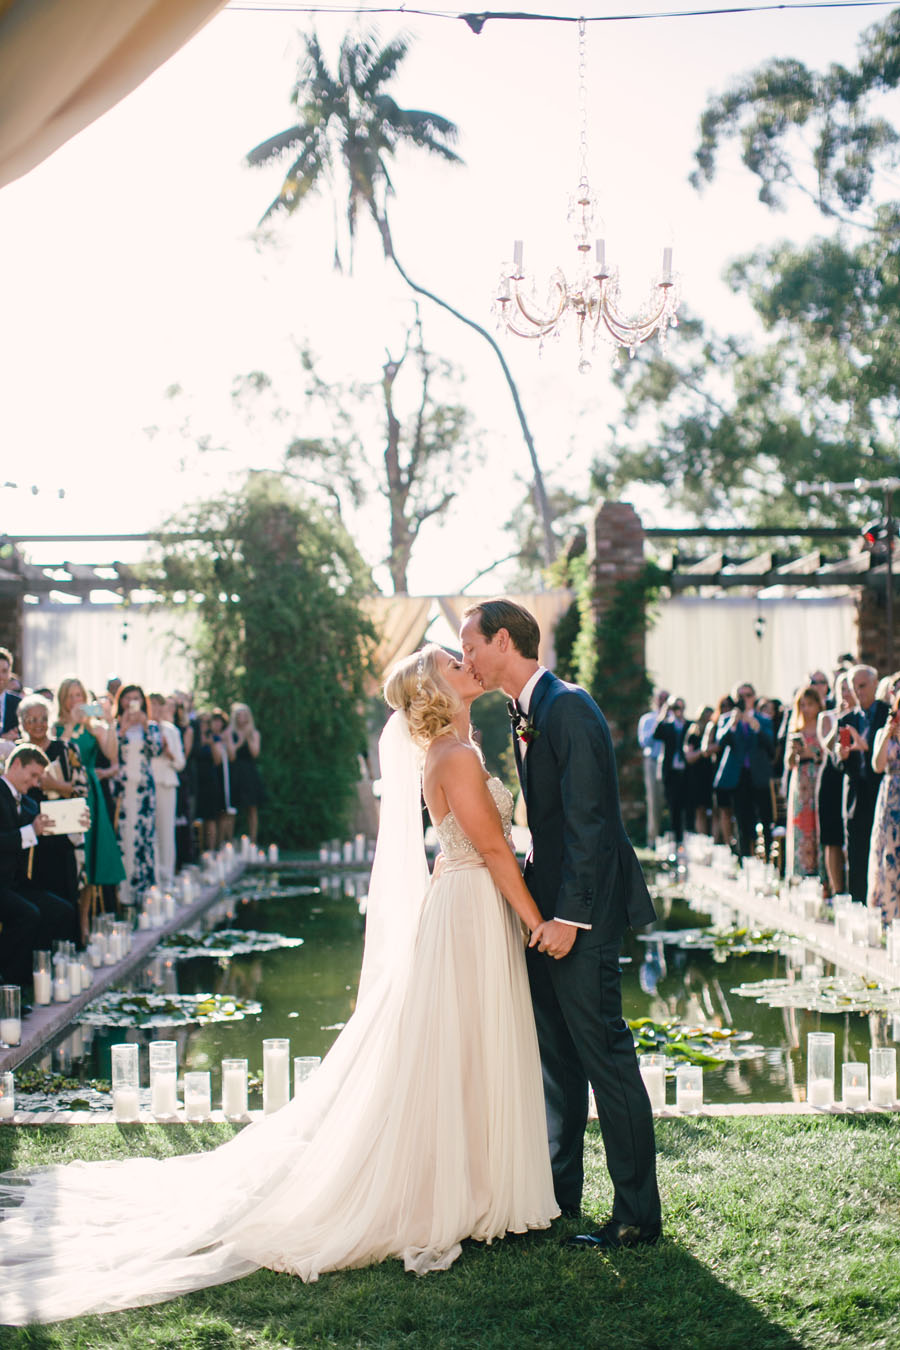 santabarbarawedding.com | Santa Barbara Wedding Style Blog | Weddings at Belmond El Encanto Hotel | MiBelle Photography | Red Wedding Inspiration